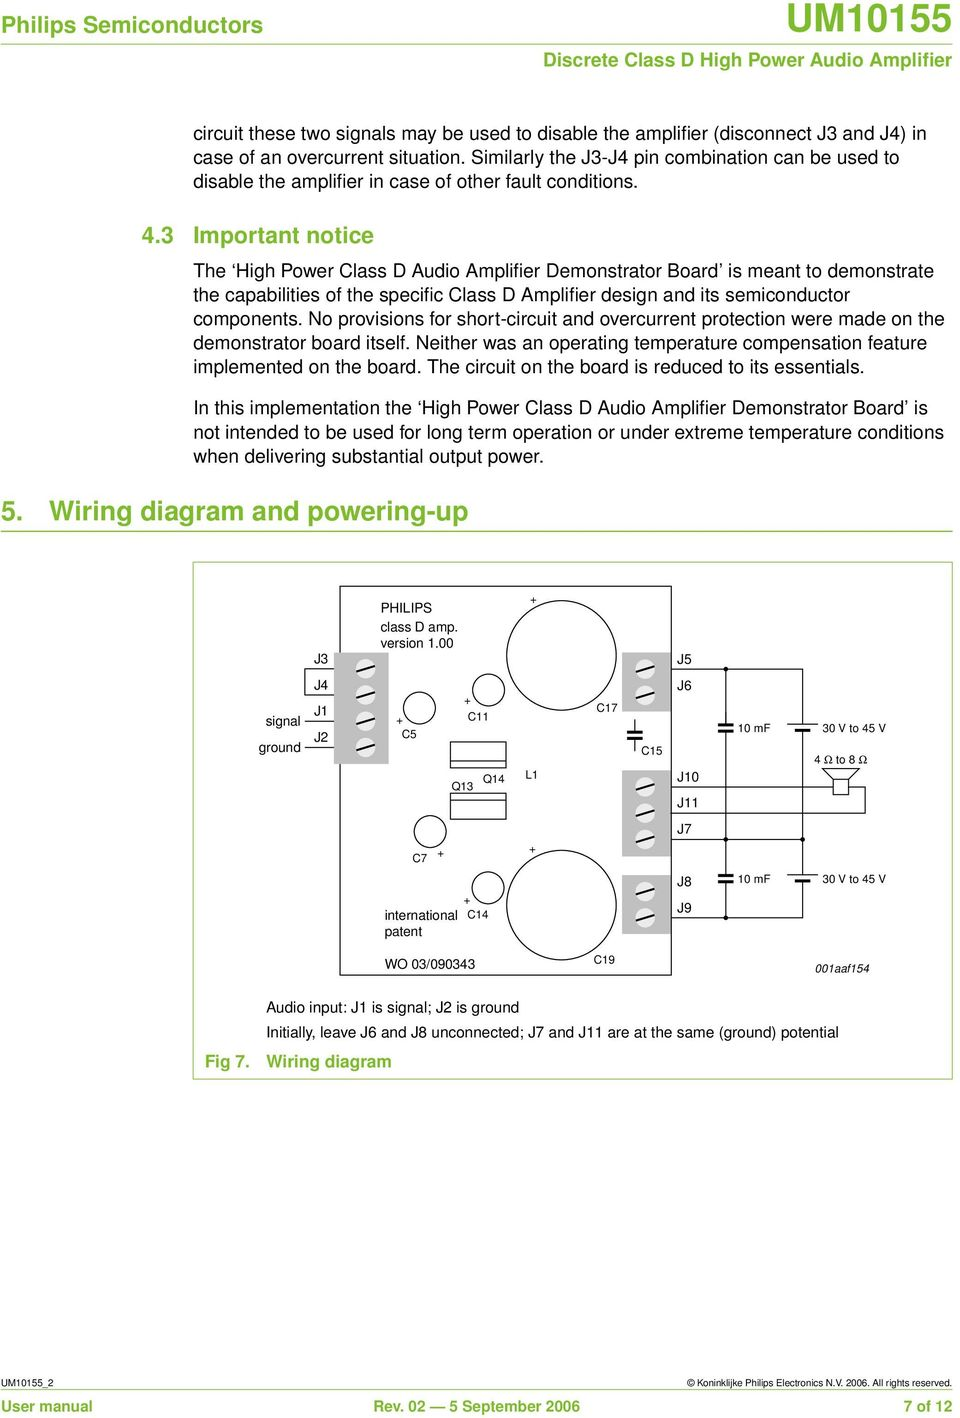 Um Discrete Class D High Power Audio Amplifier Document Information Circuit Diagram 3 Important Notice The Demonstrator Board Is Meant To Demonstrate